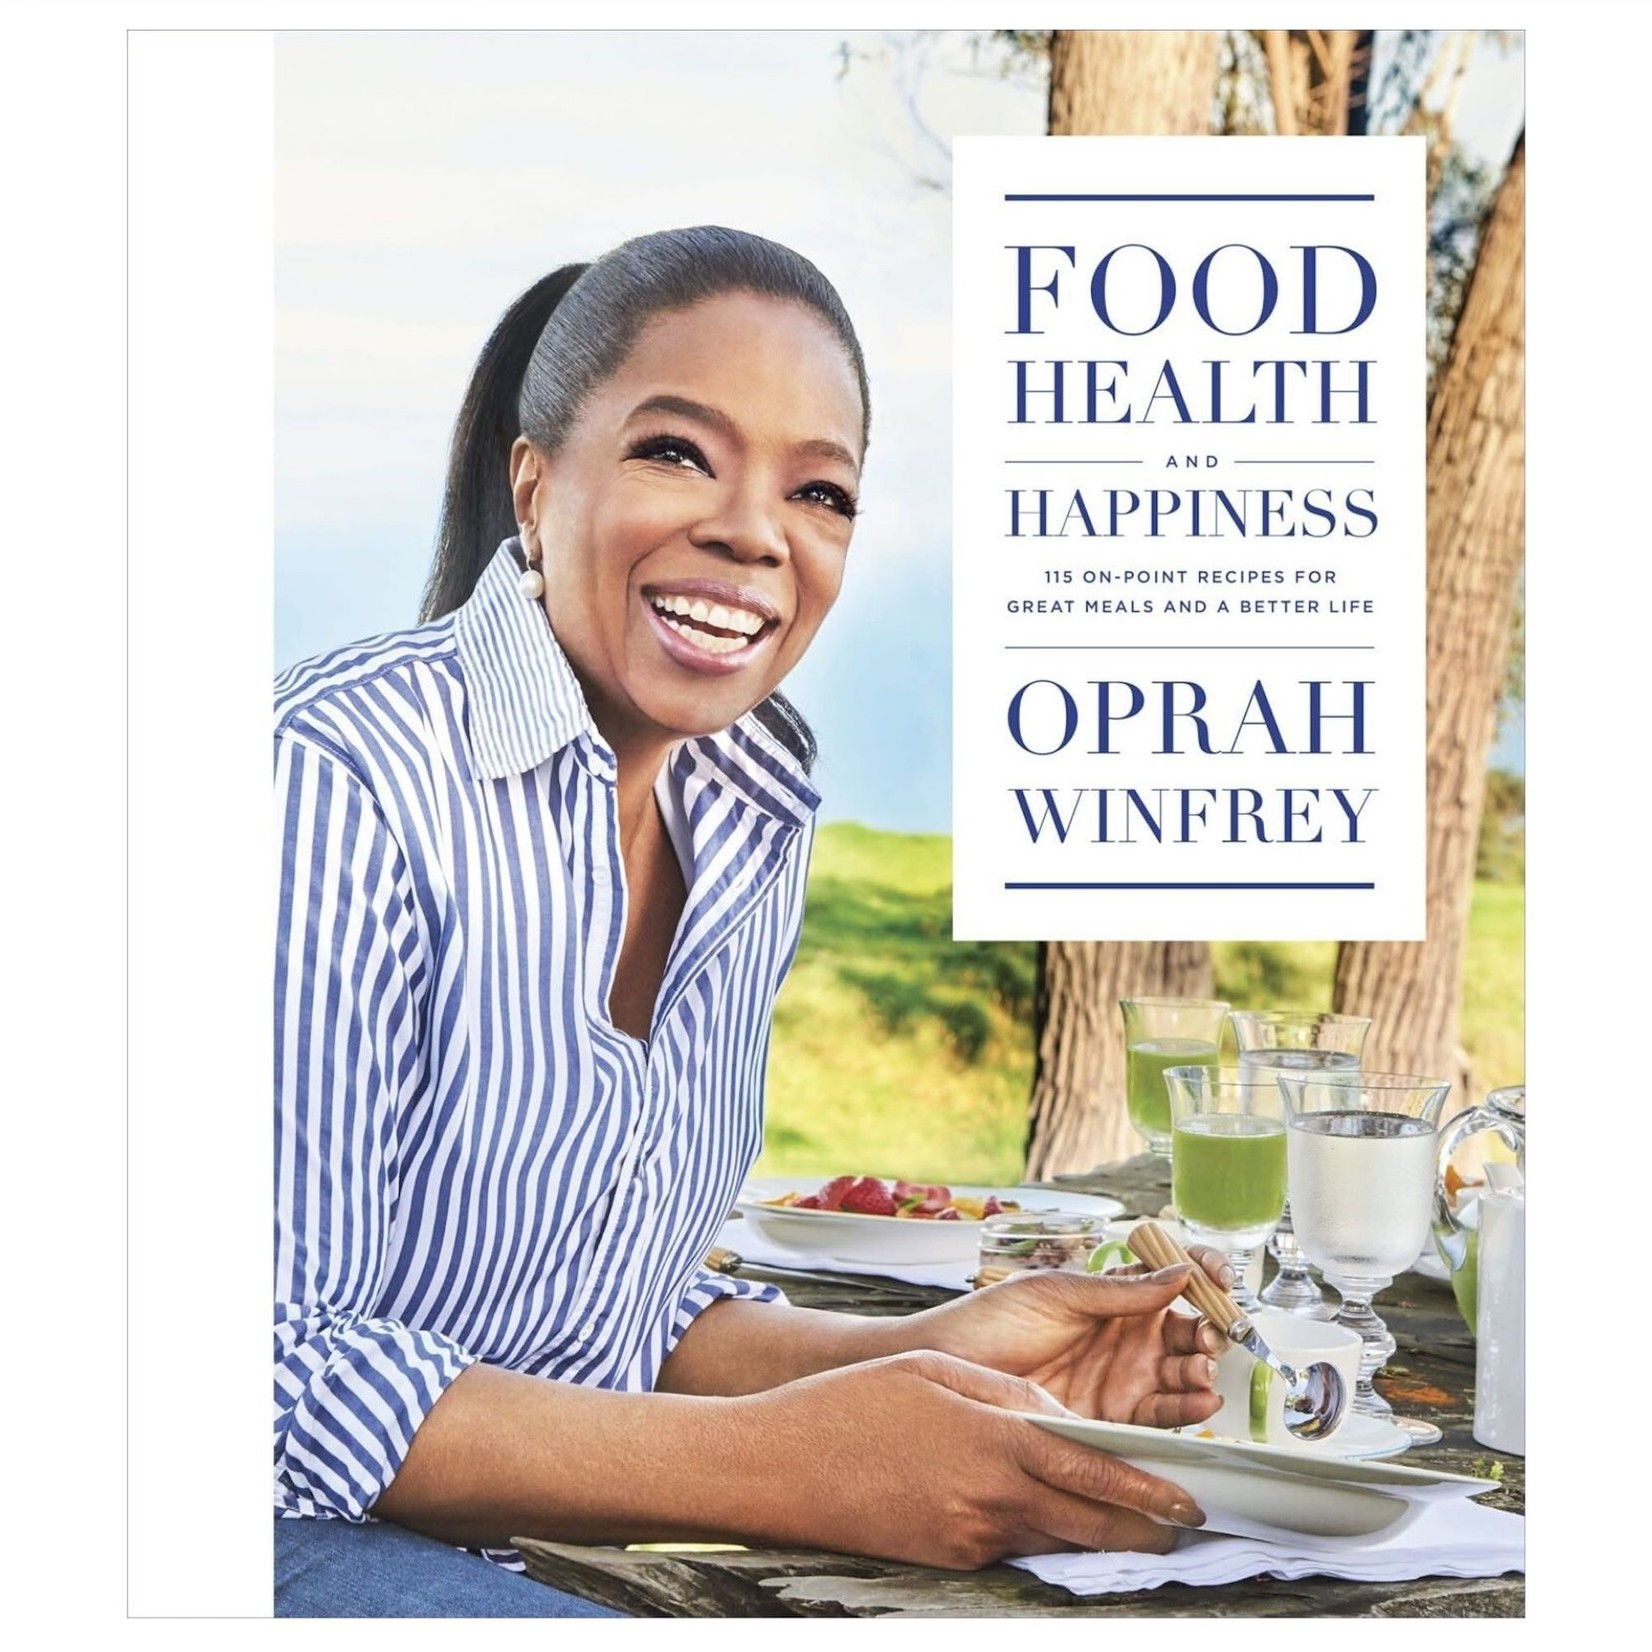 Food, Health, and Happiness